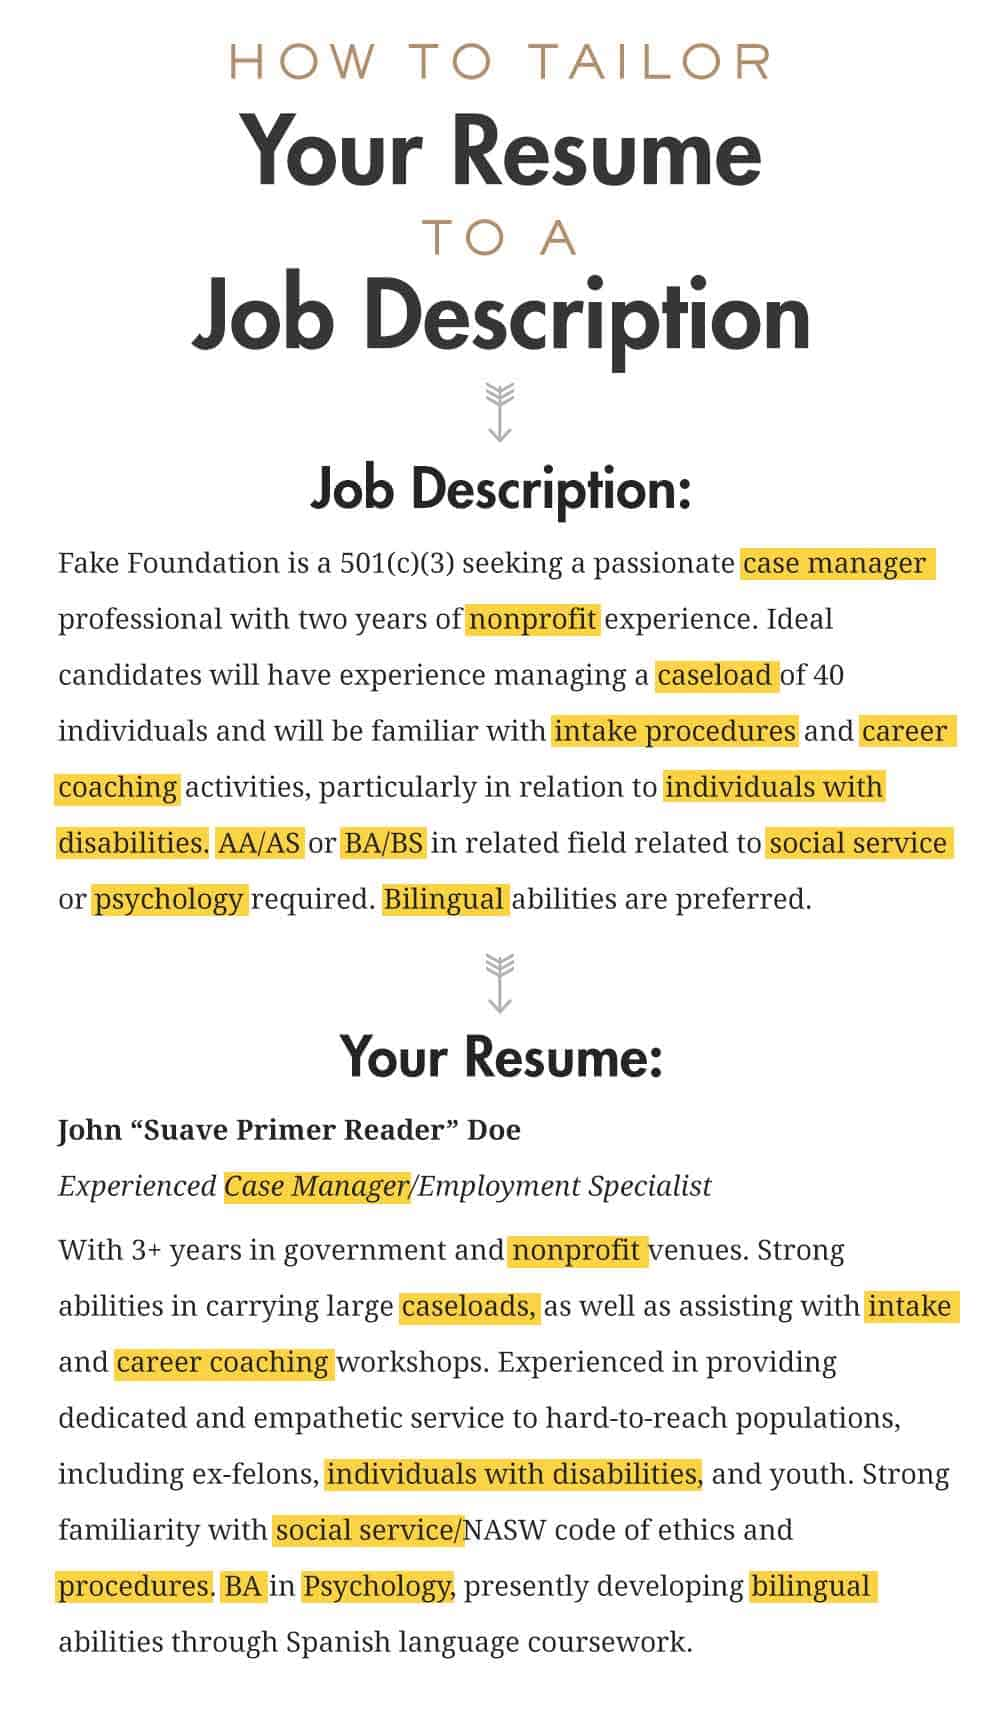 how to tailor a resume to a job description